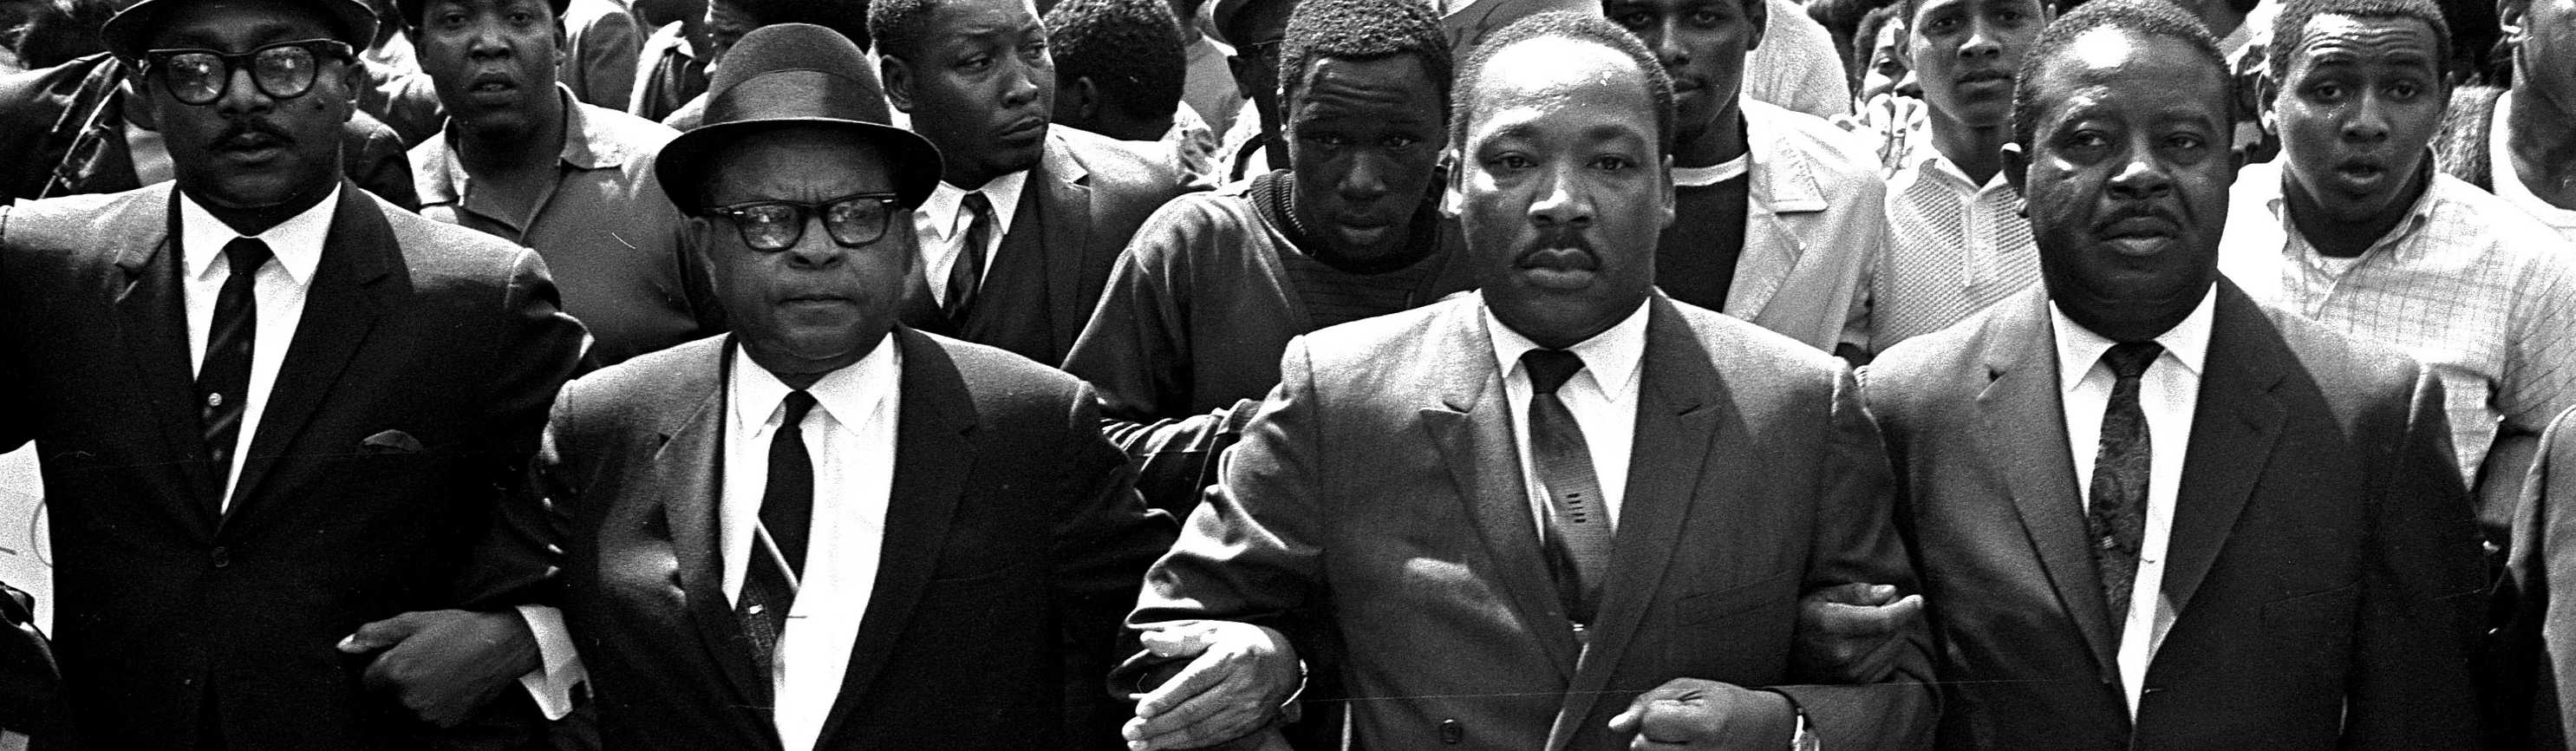 The Rev. Ralph Abernathy, Bishop Julian Smith and Dr. Martin Luther King, Jr., during a civil rights march in Memphis, Tenn., March 28, 1968.